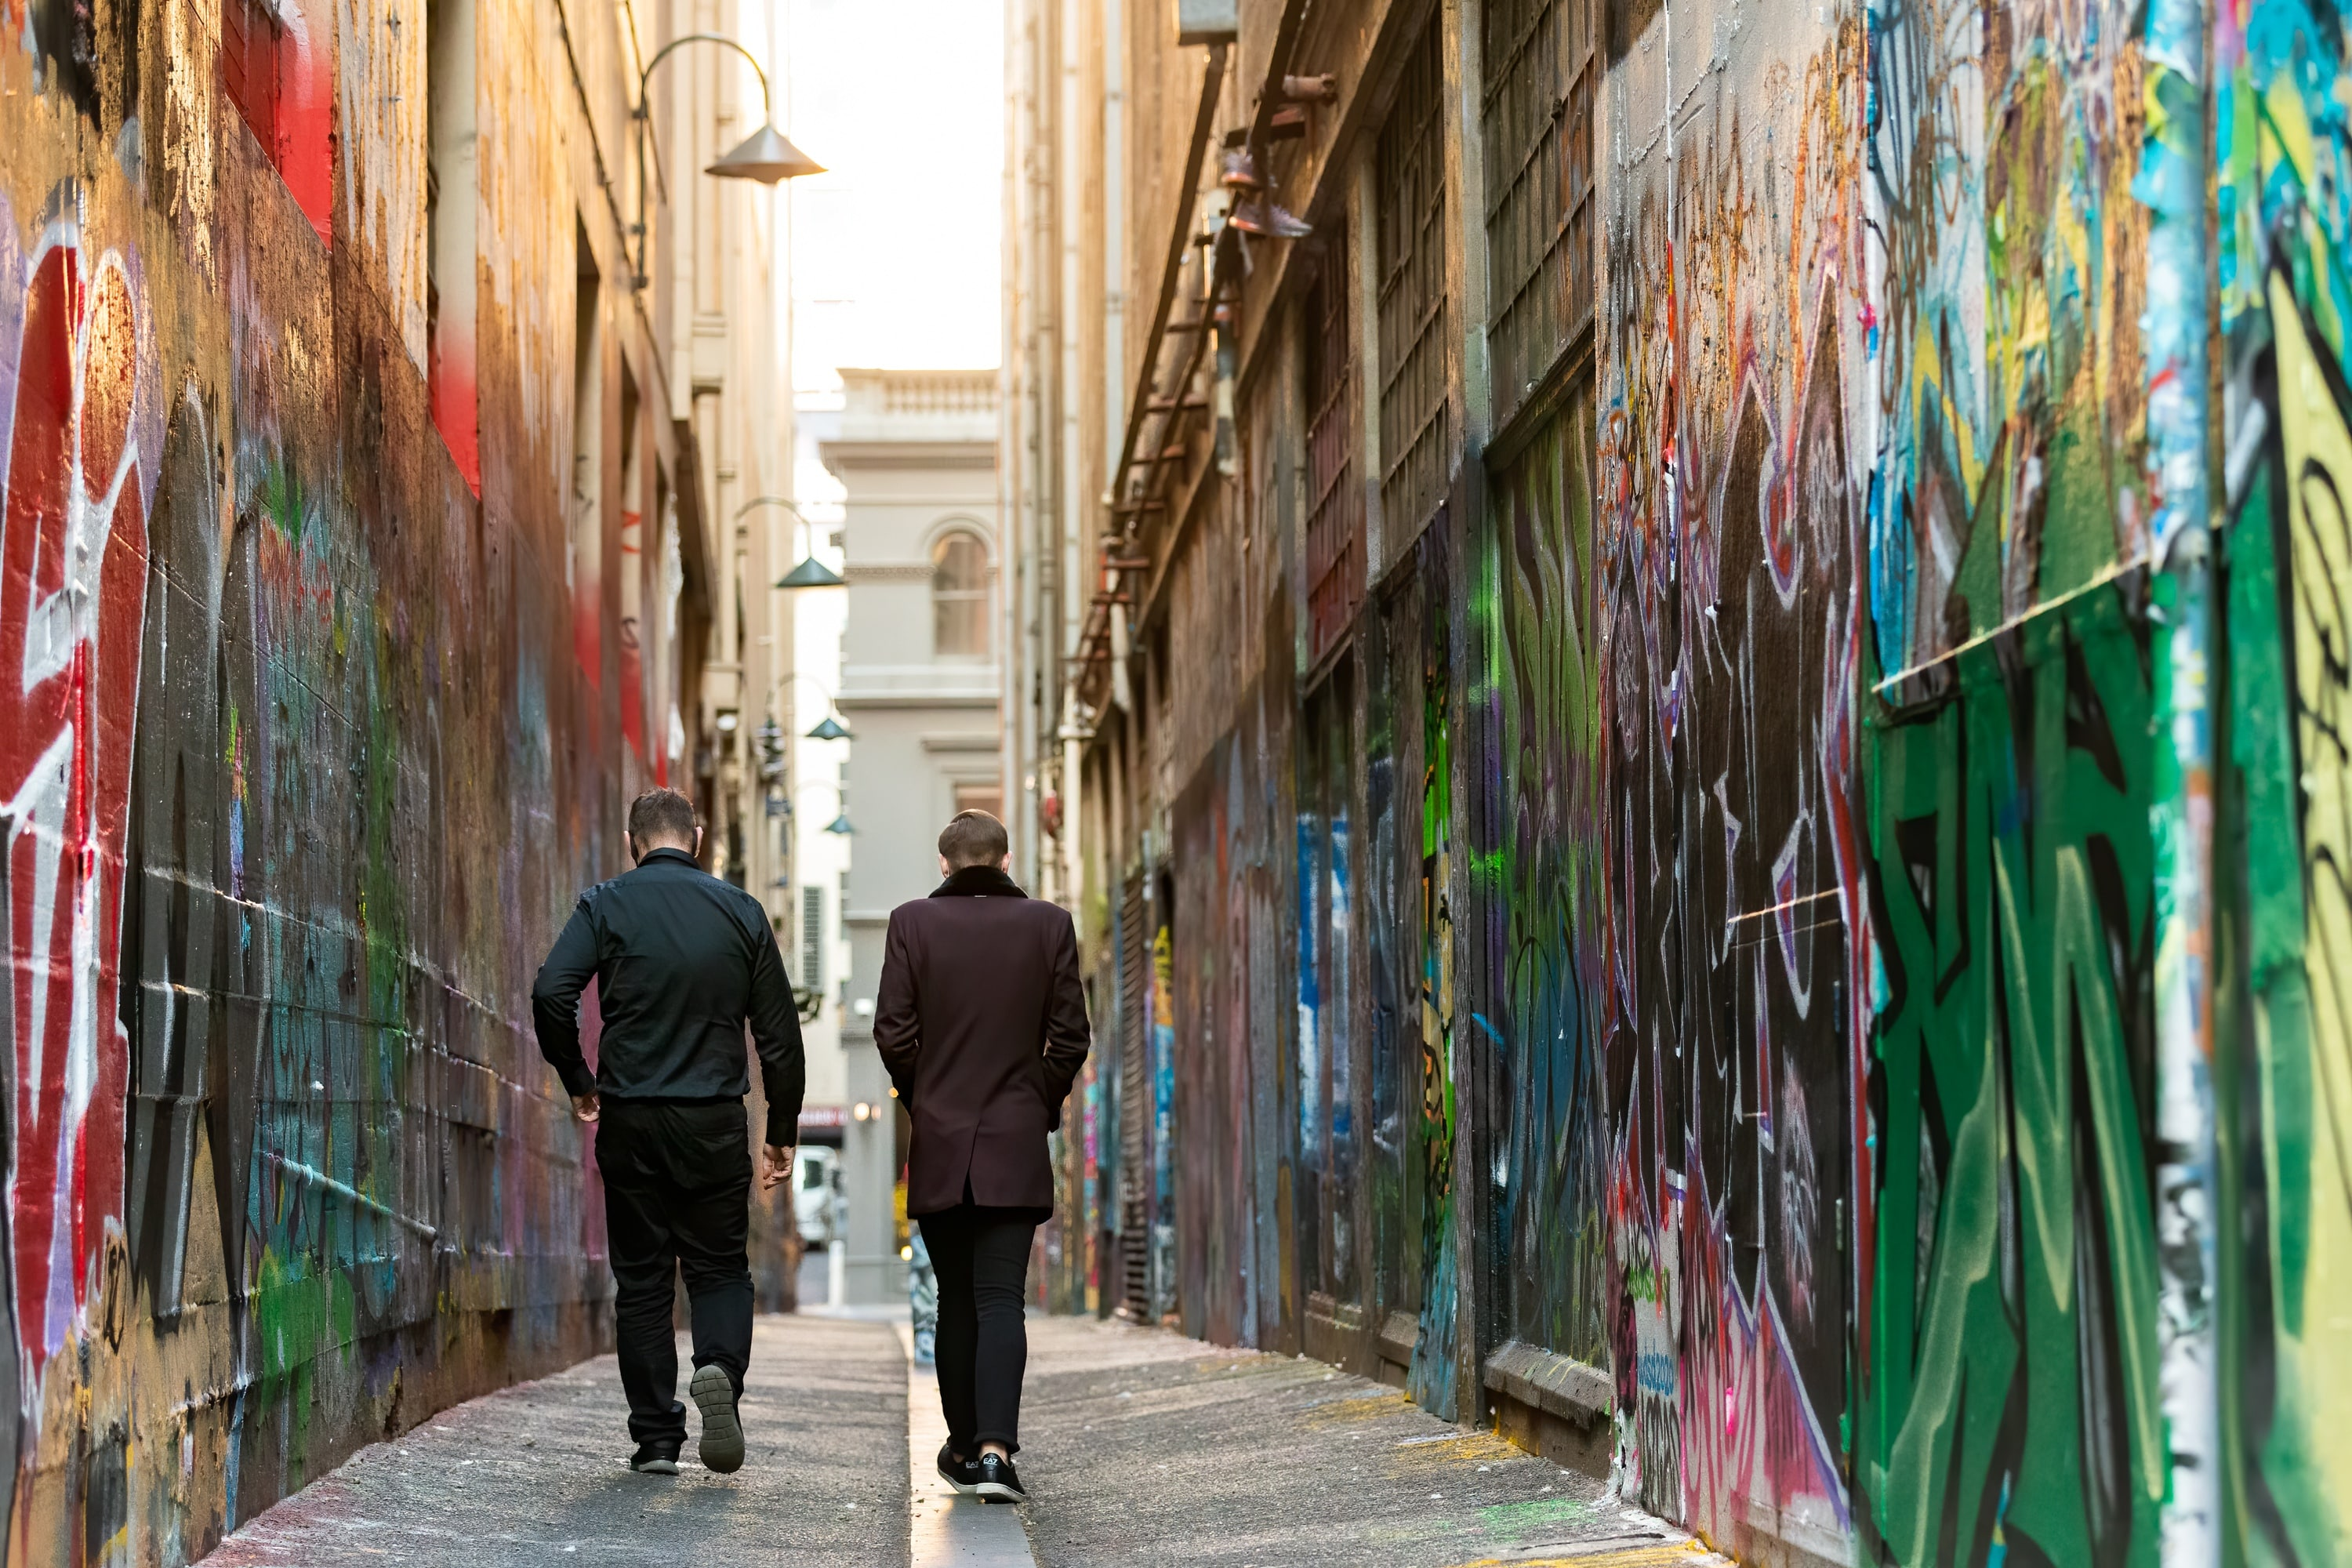 MELBOURNE, AUSTRALIA - JULY 29: Two men walk down one of Melbourne's famous alley ways during COVID 19 on 29 July, 2020 in Melbourne, Australia. As sustained high numbers of new Coronavirus cases are being discovered, Metropolitan Melbourne and the Mitchell Shire remain under Stage 3 restrictions with facemasks being made mandatory on 23 July. 295 new cases were found overnight bringing the states total active case numbers to 4,775. (Photo by Speed Media/Icon Sportswire)